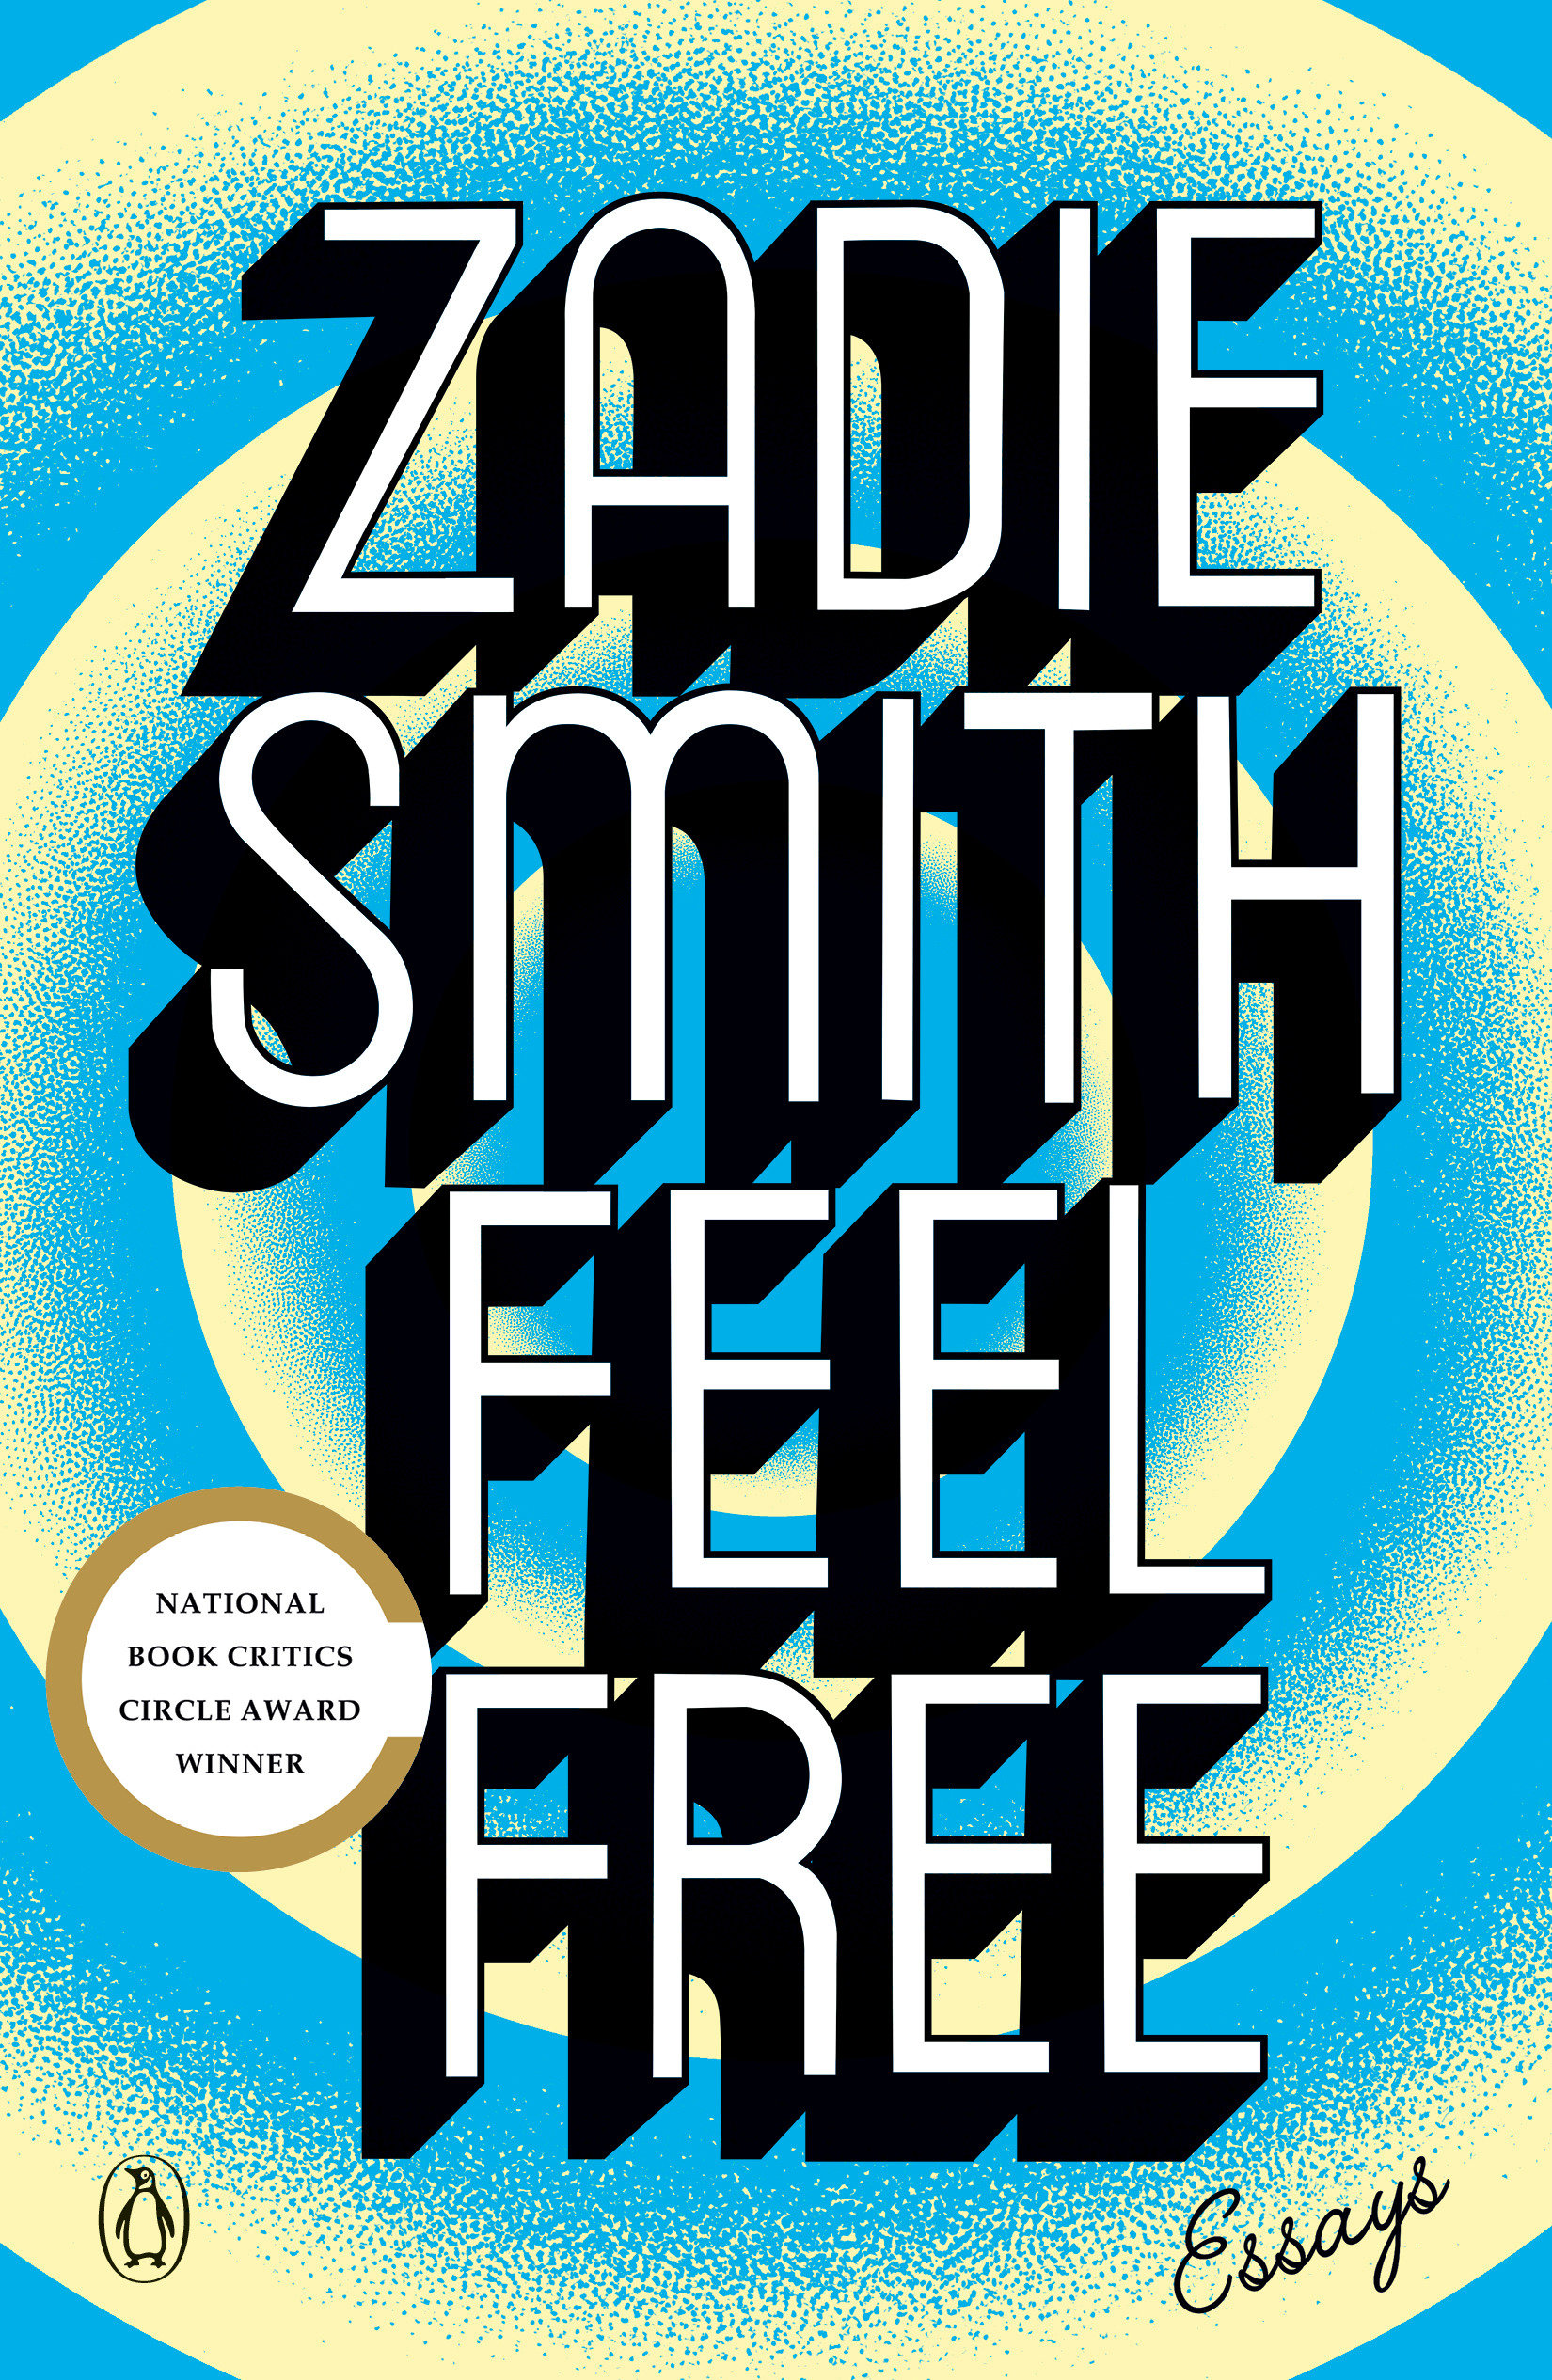 Feel free essays cover image